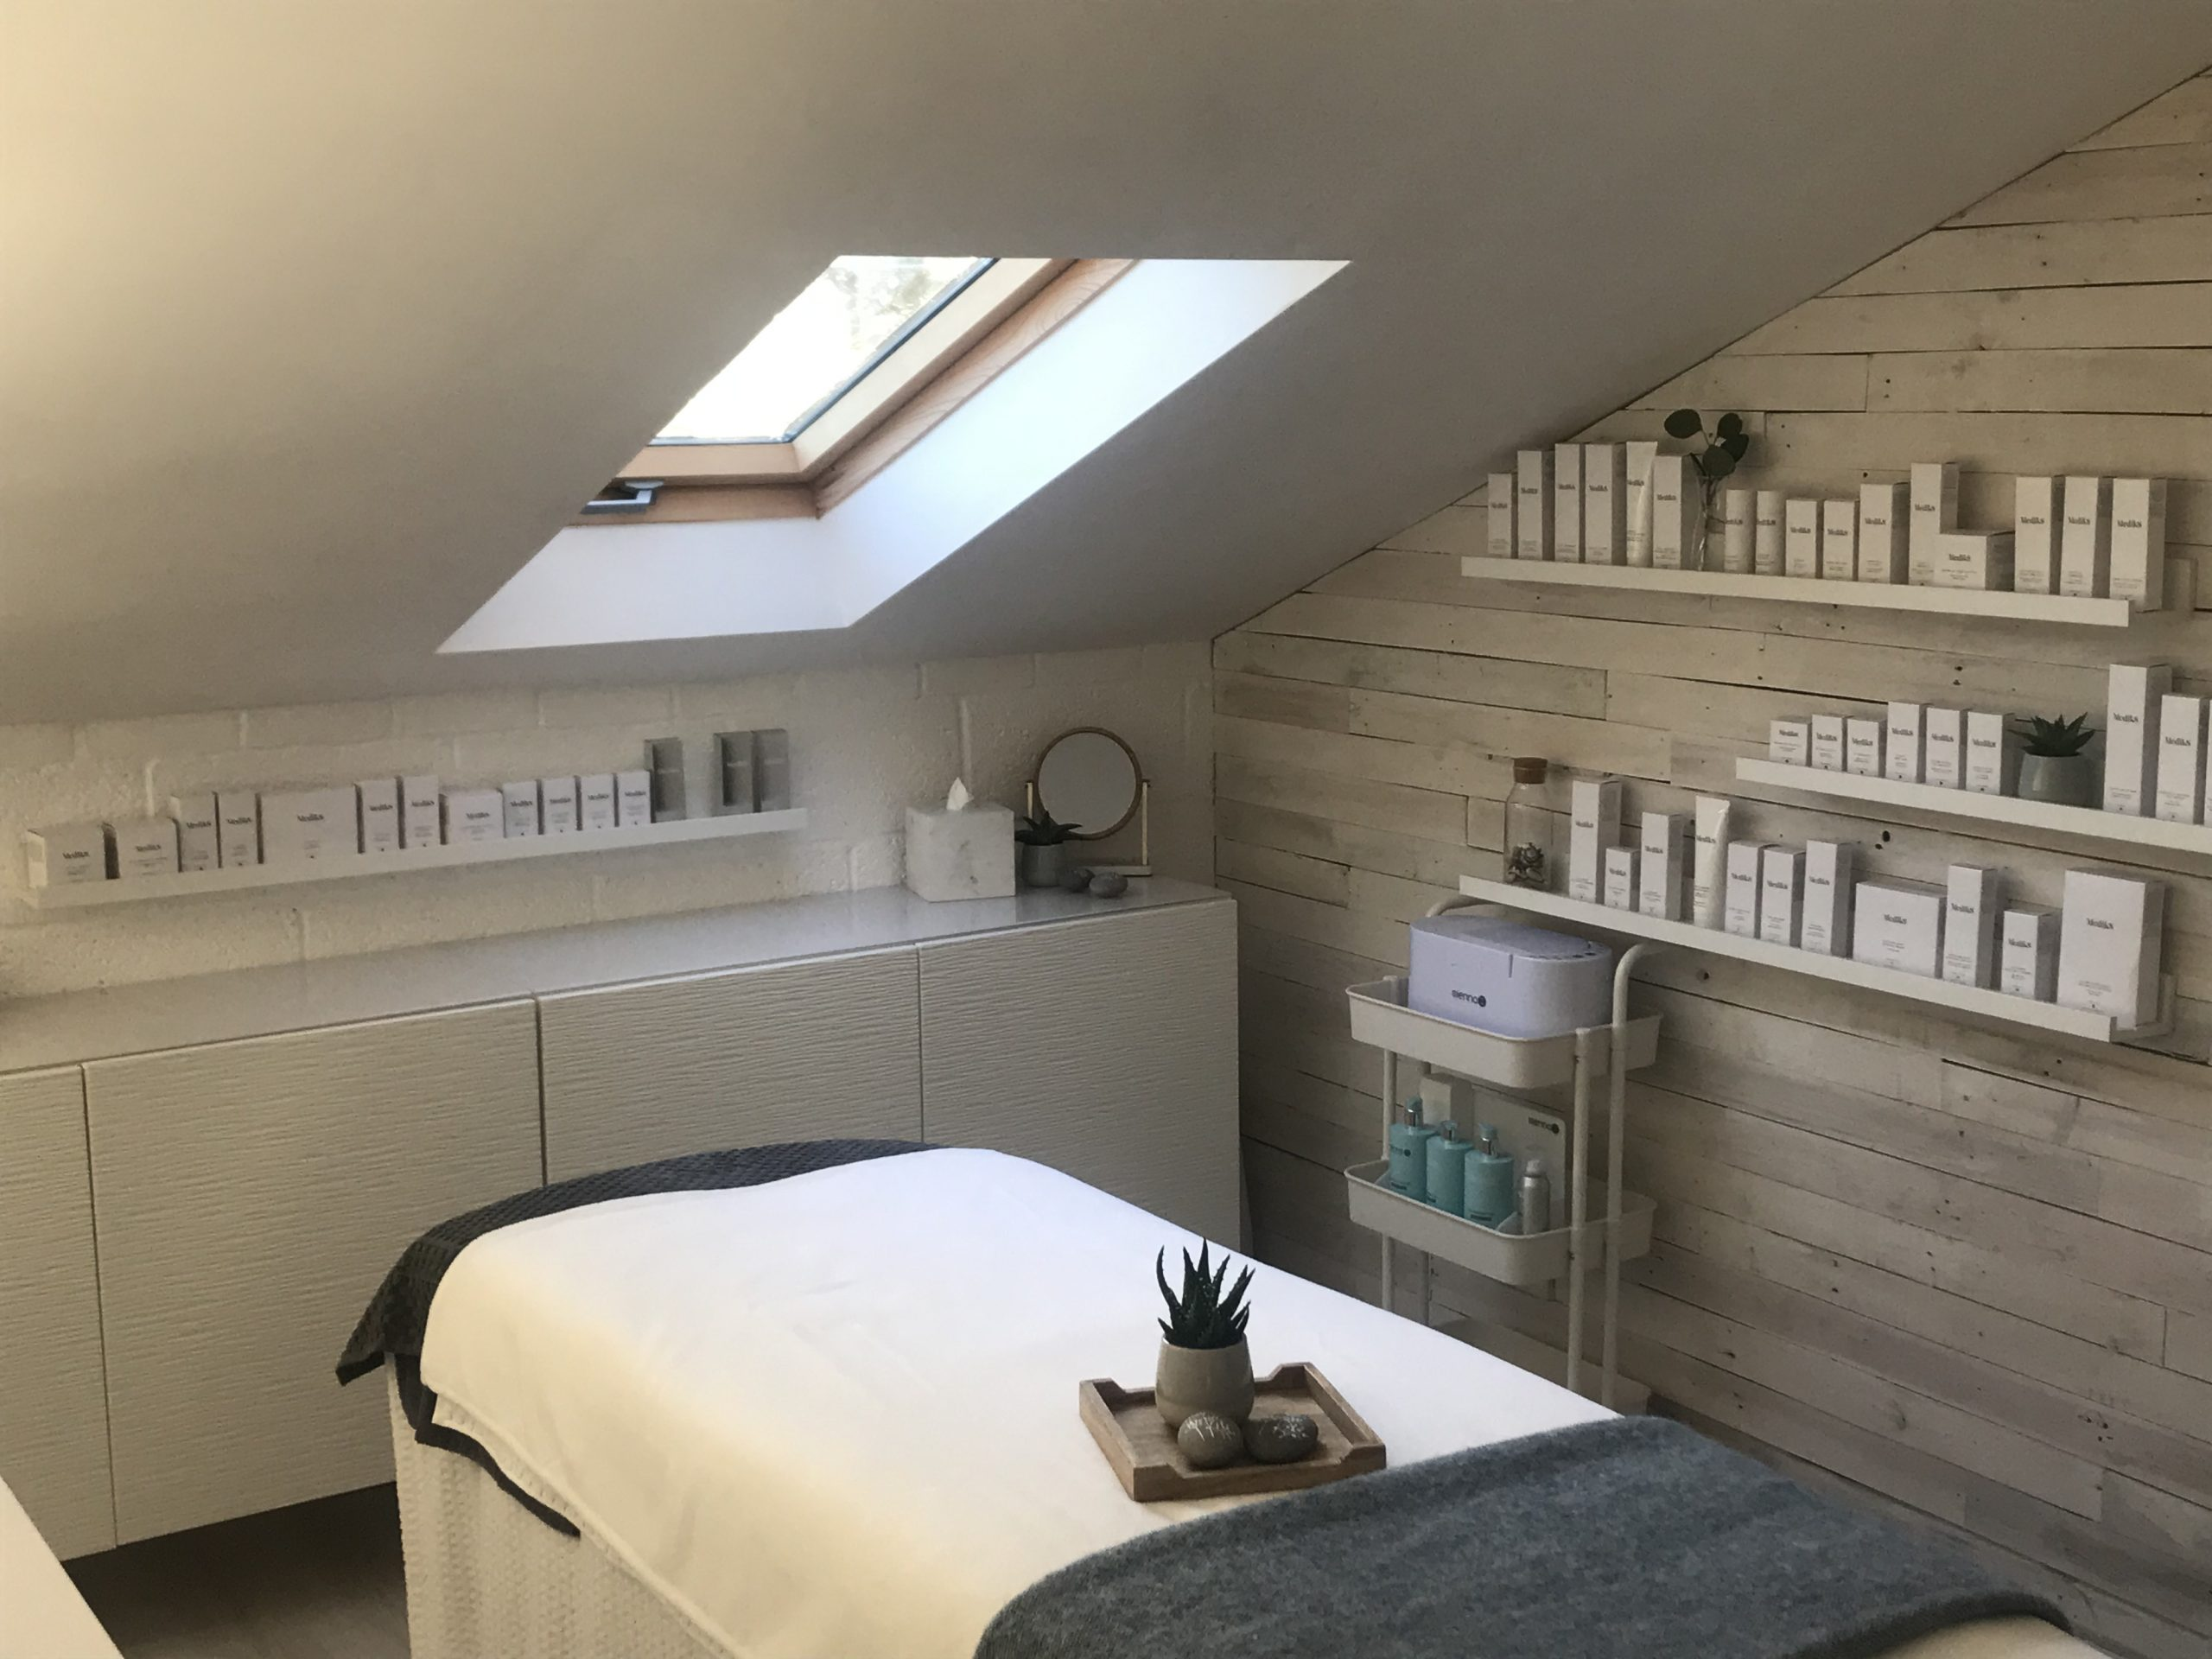 SkinLab Boutique opens in Barton Le Clay